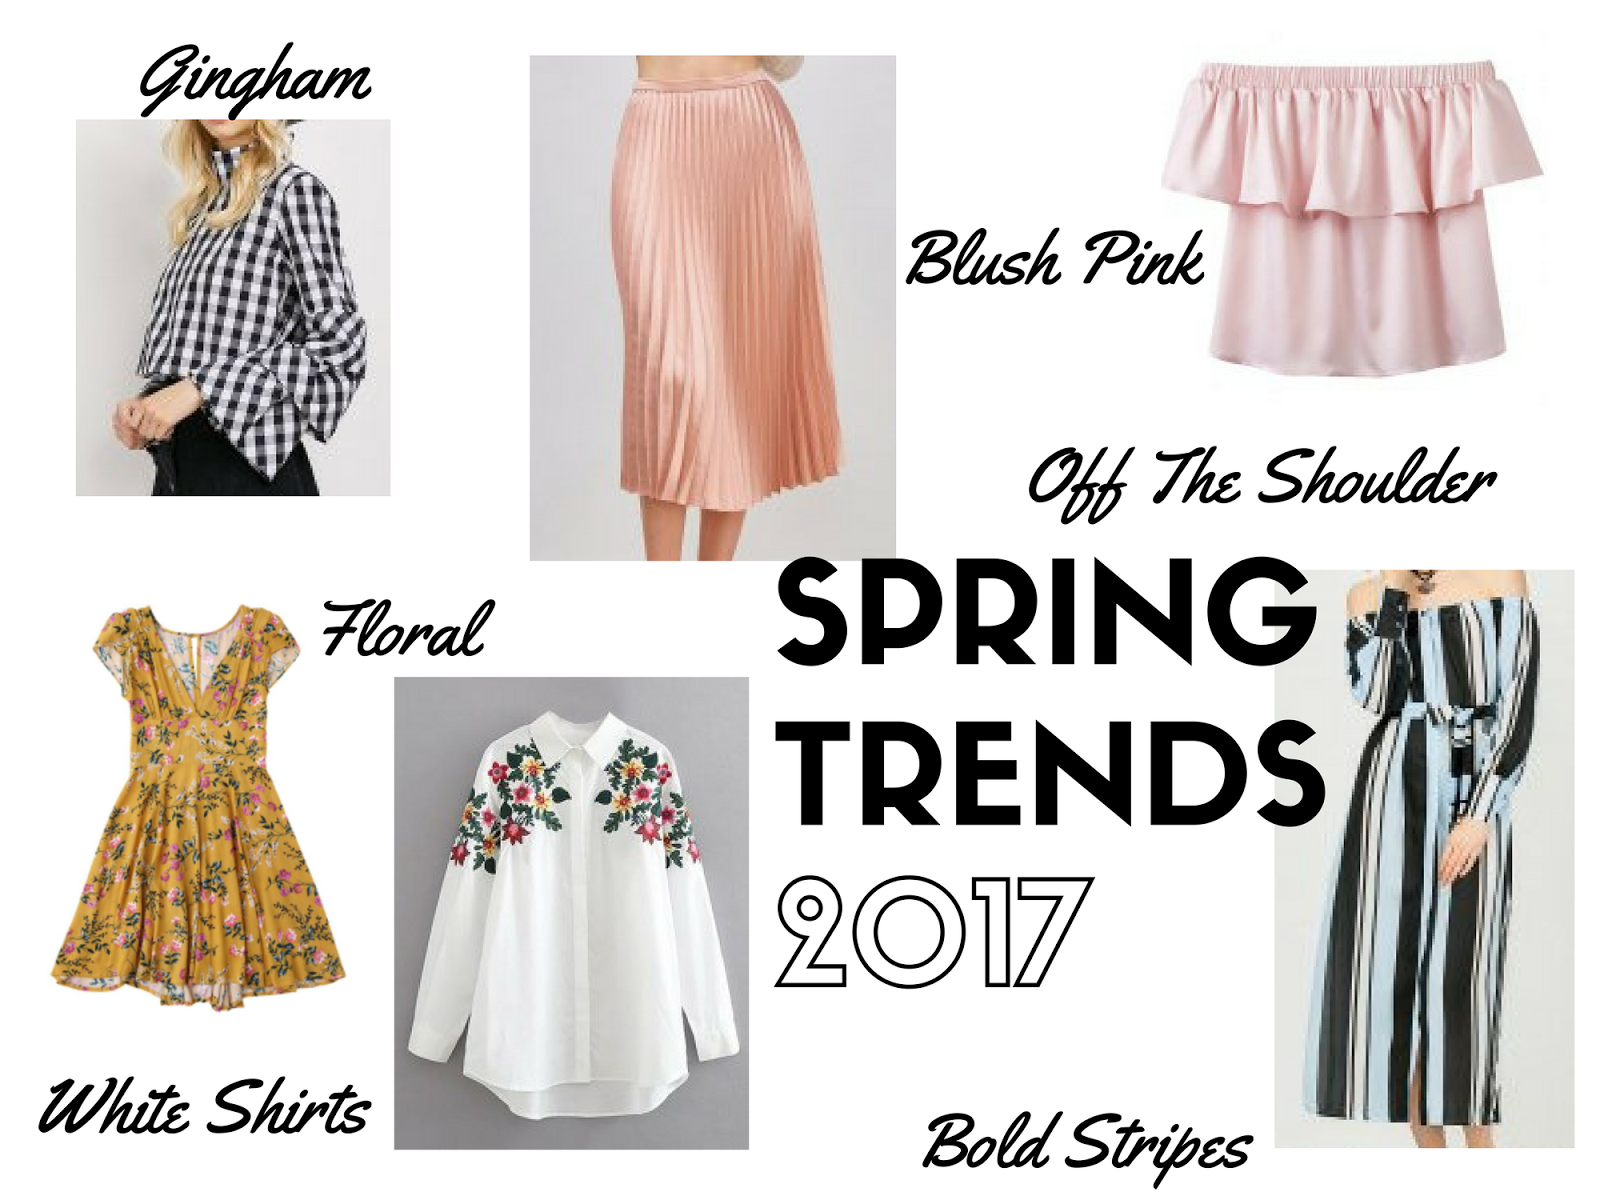 The Biggest Spring Trends of 2017